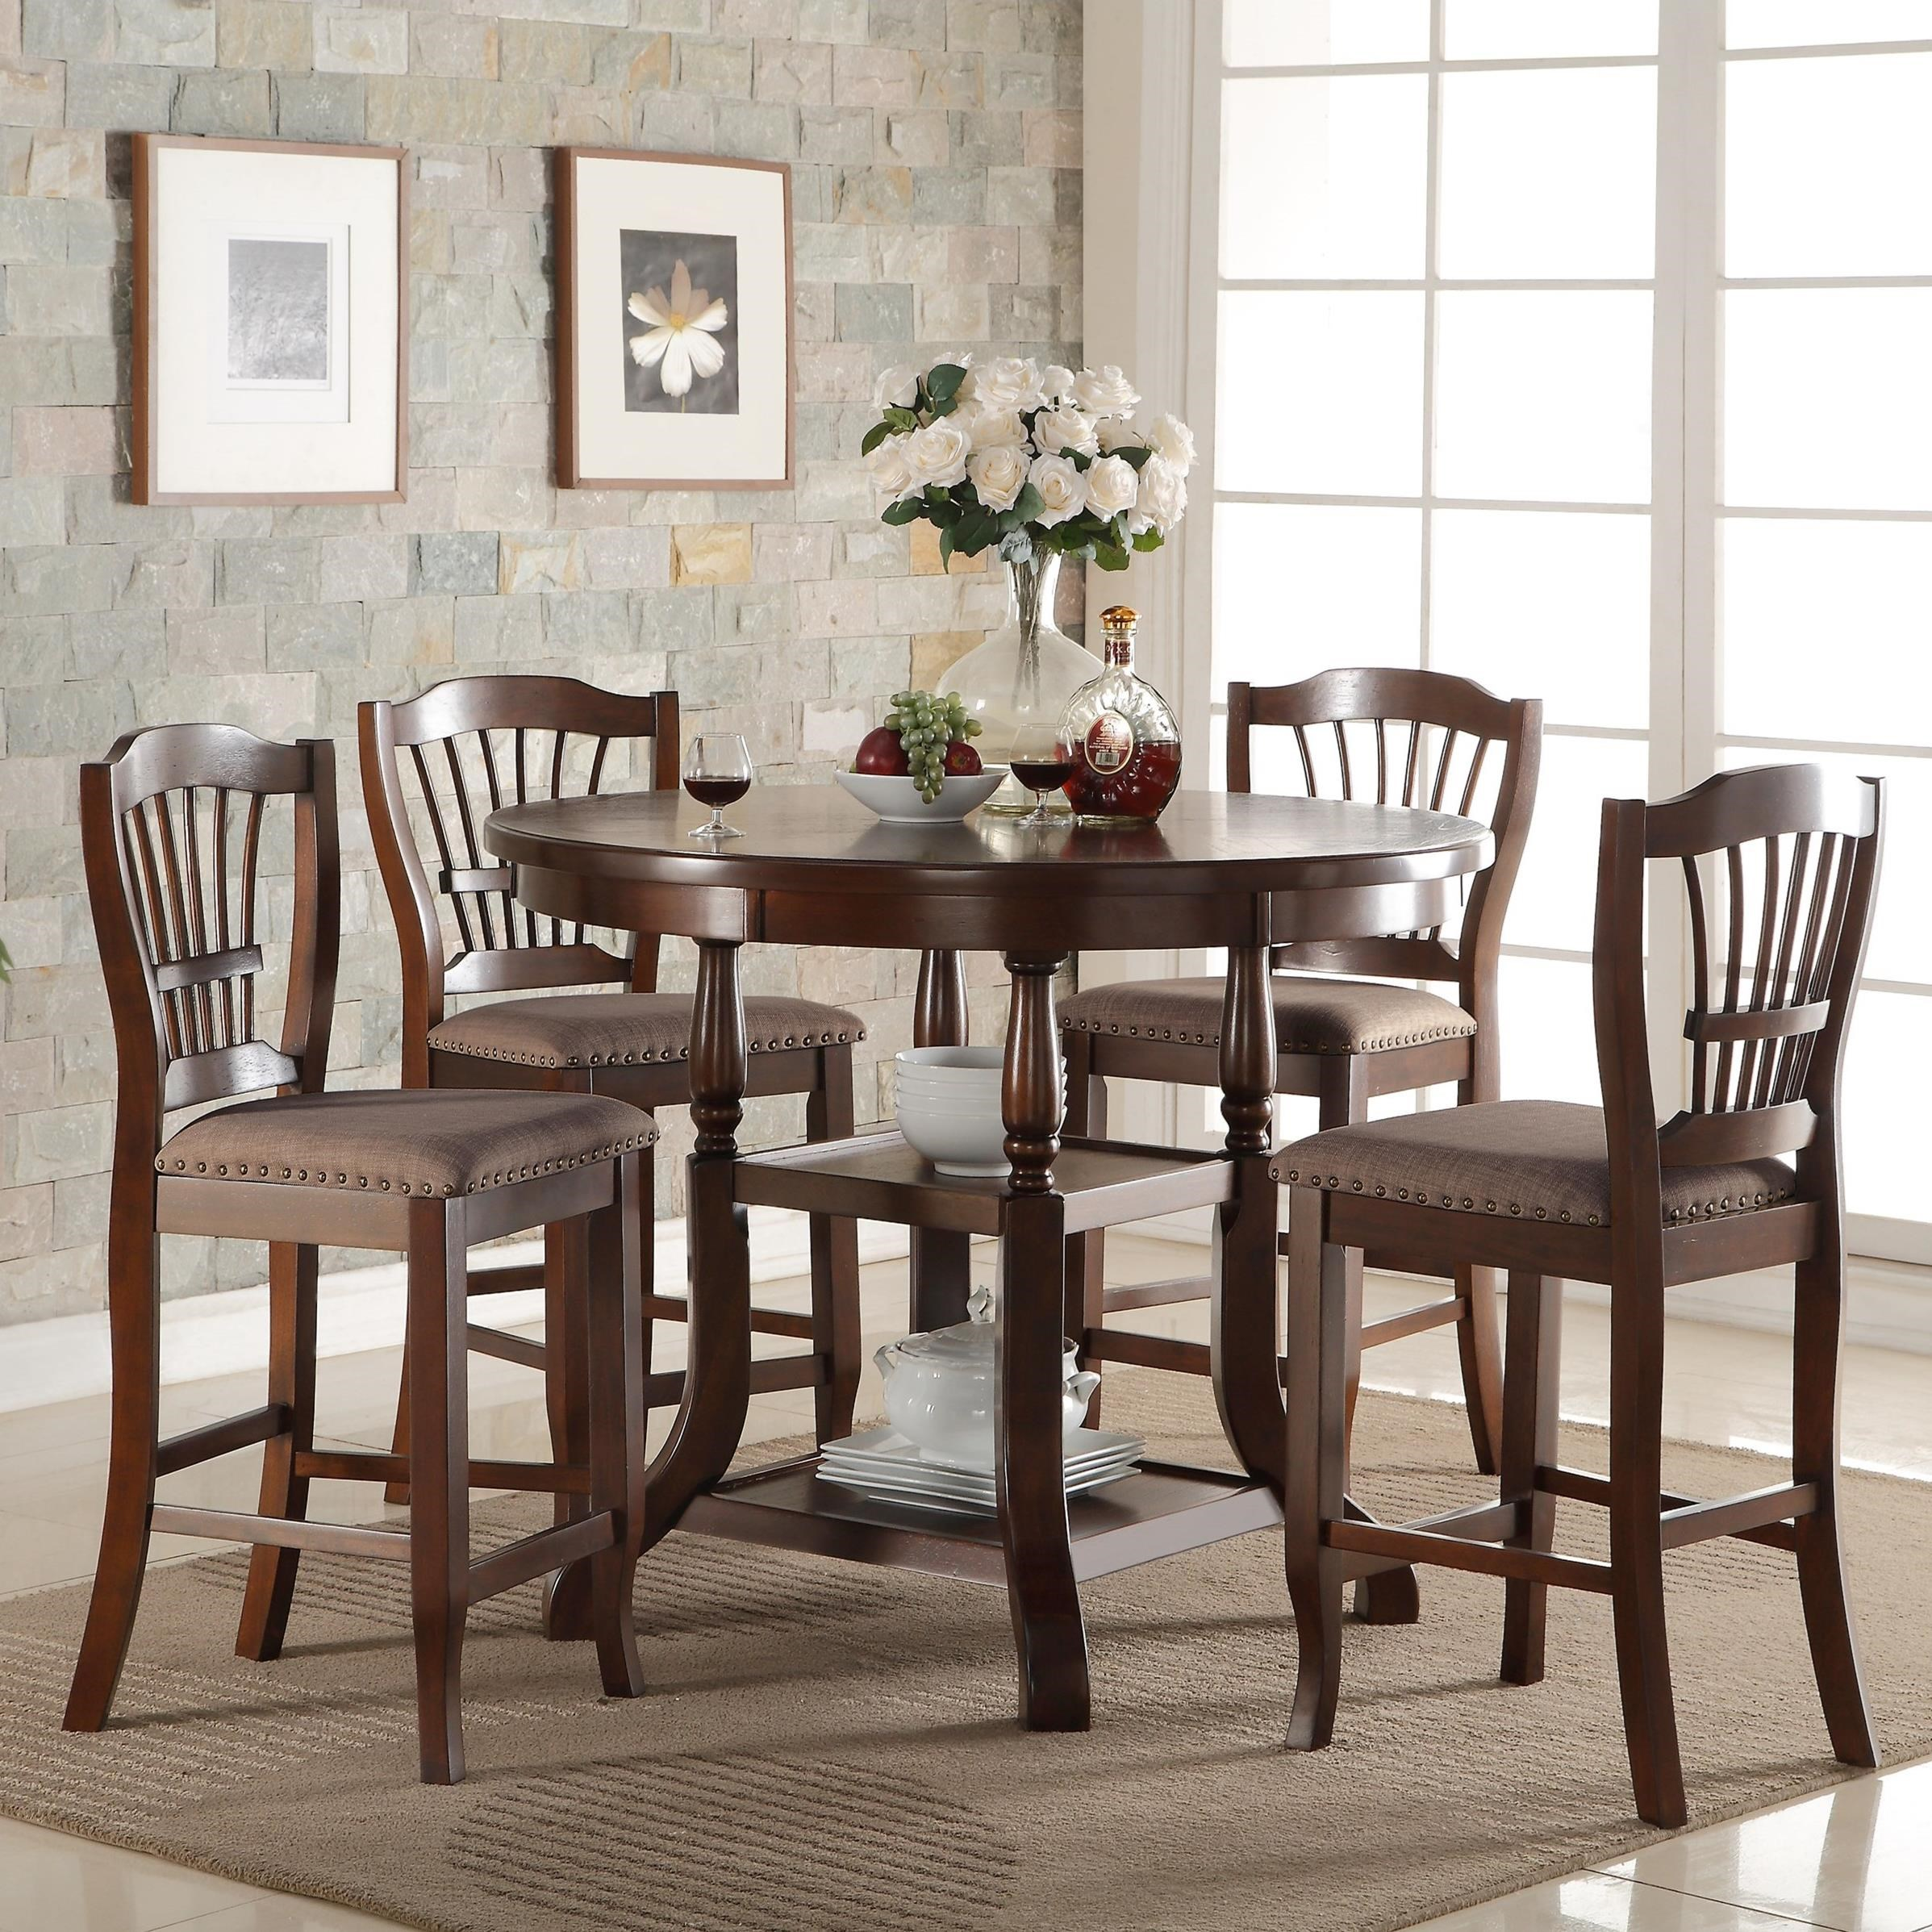 Bixby 5 Piece Round Counter Table Set by New Classic at A1 Furniture & Mattress